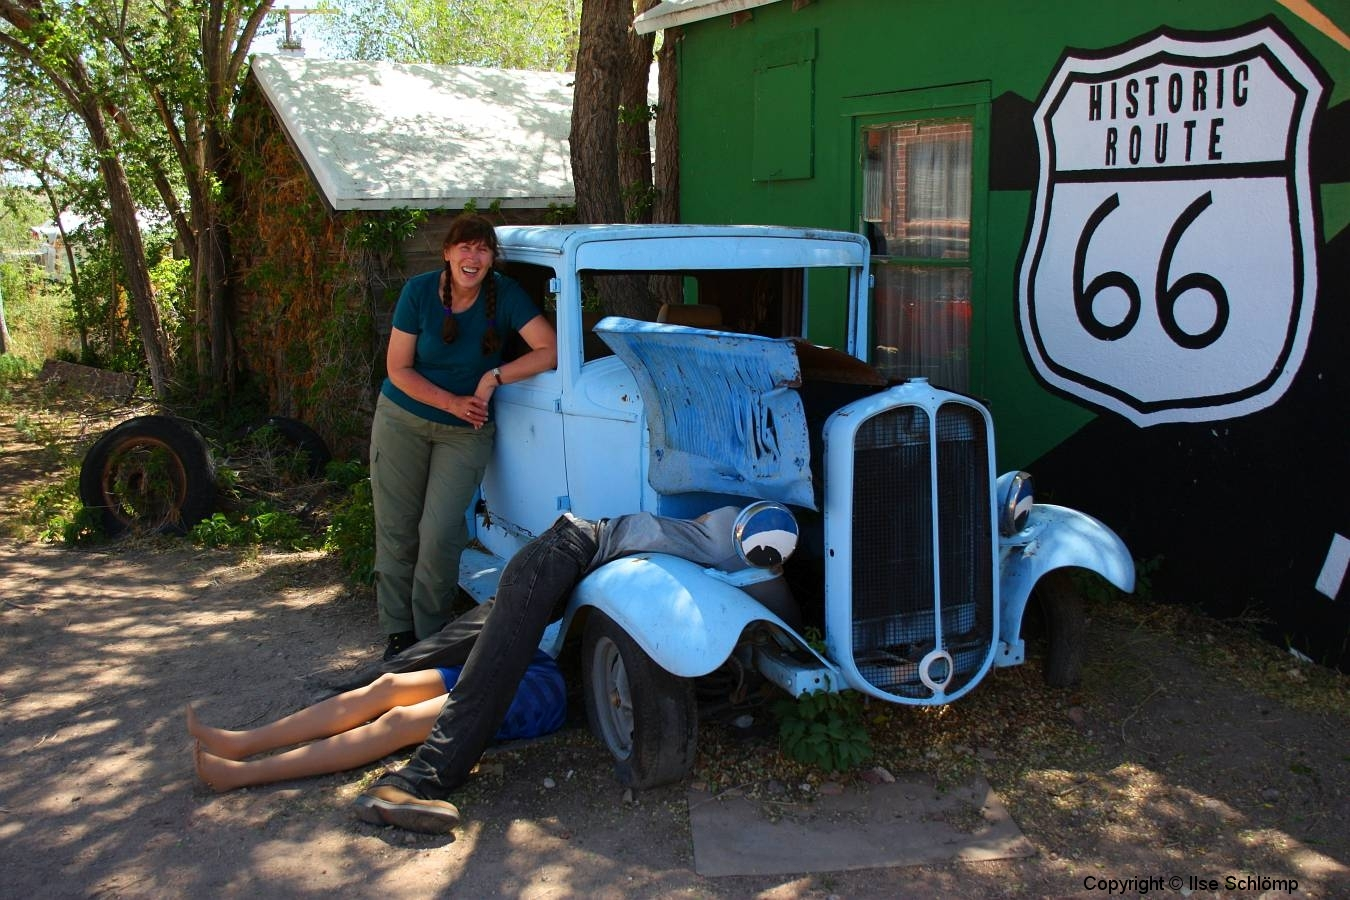 USA, Arizona, Route 66, Bonnie and Clyde